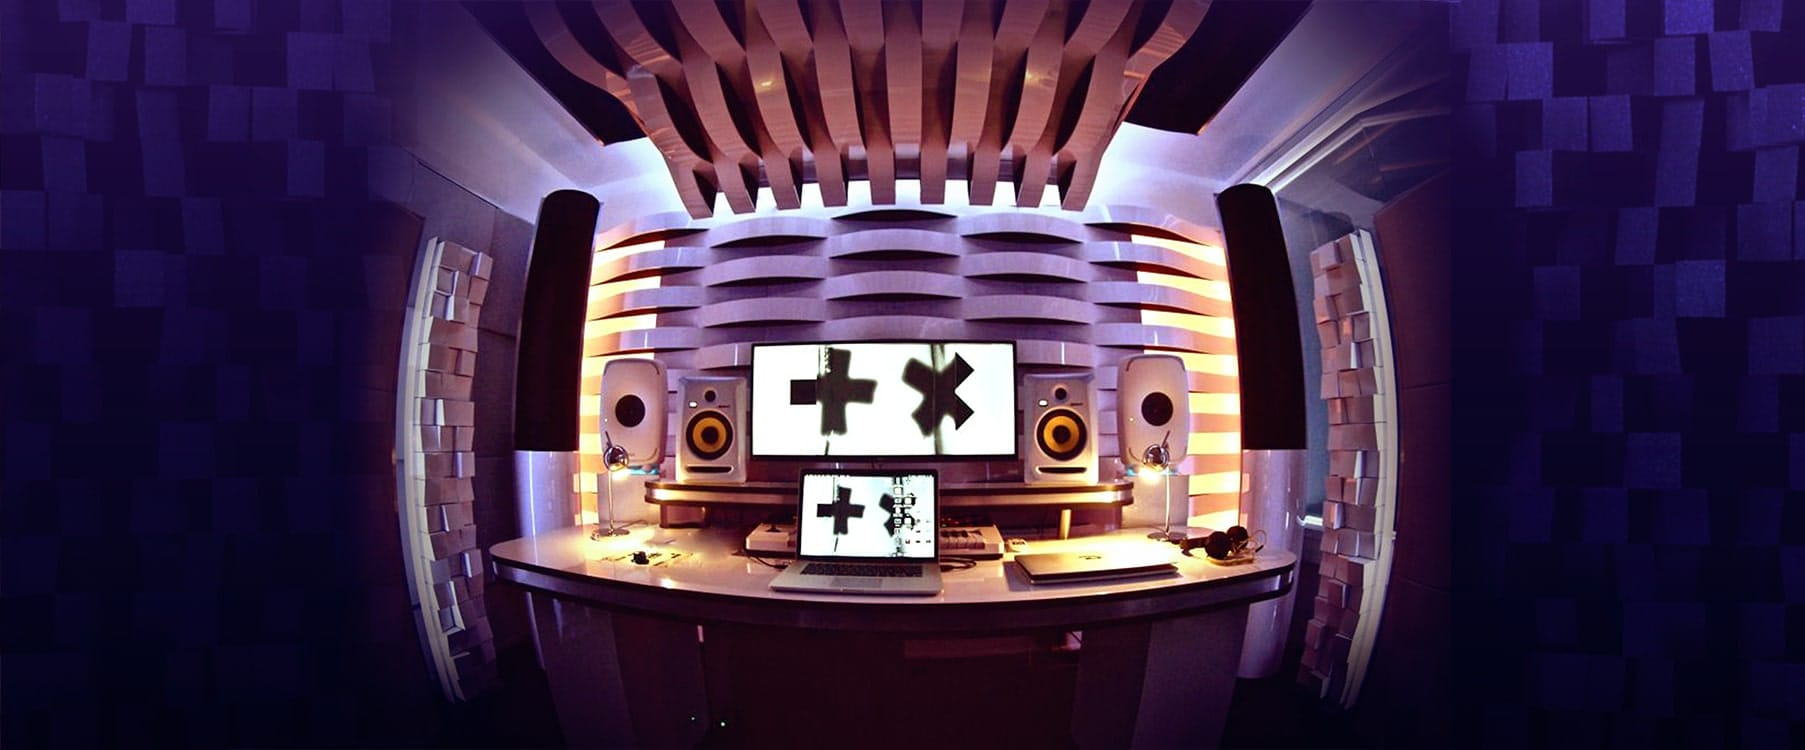 Studio Acoustics & Soundproofing Basics